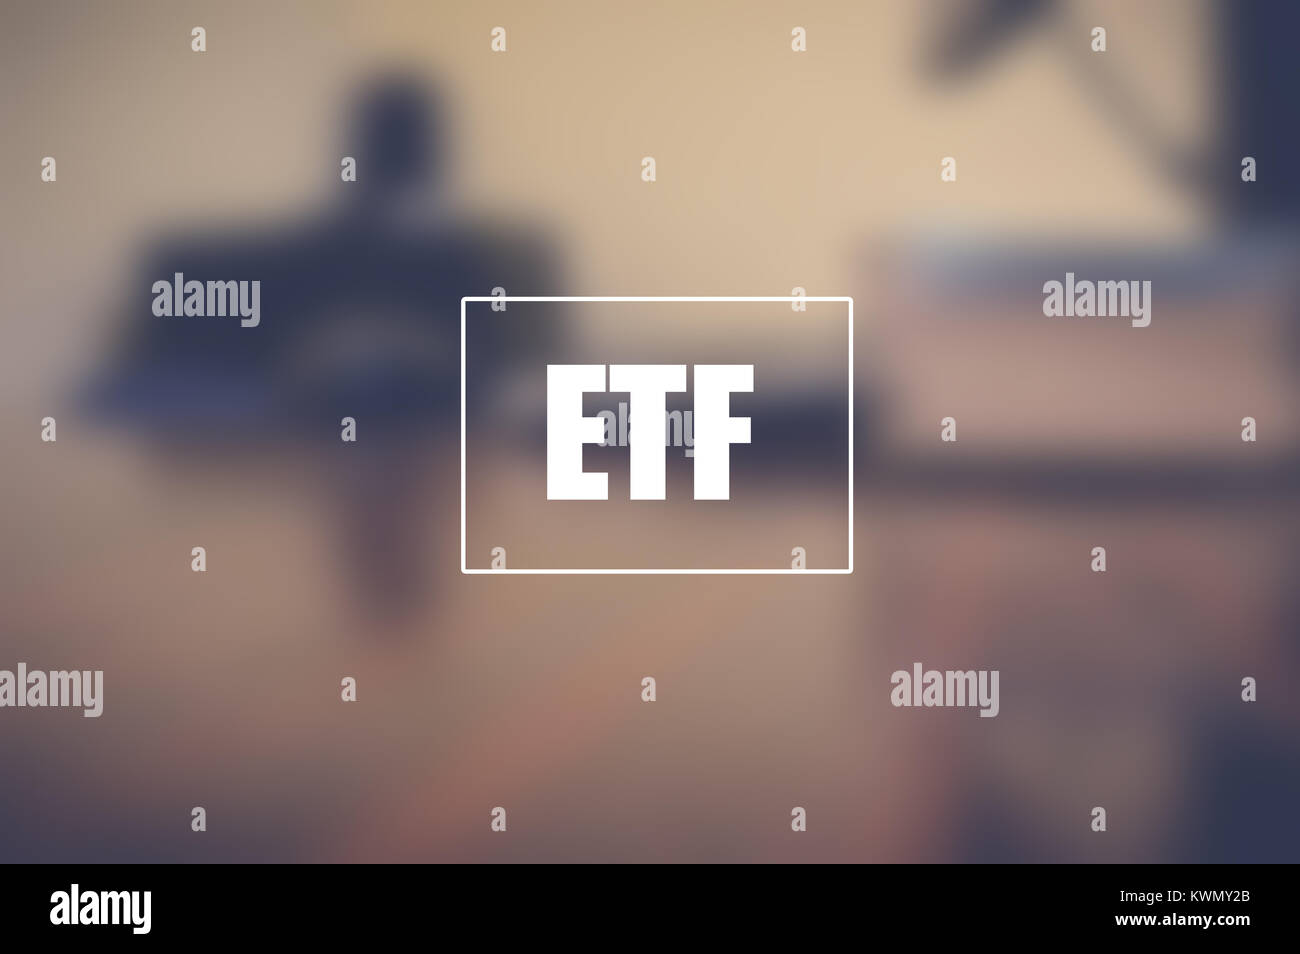 ETF, exchange traded fund, business and technology concept.jpg Stock Photo